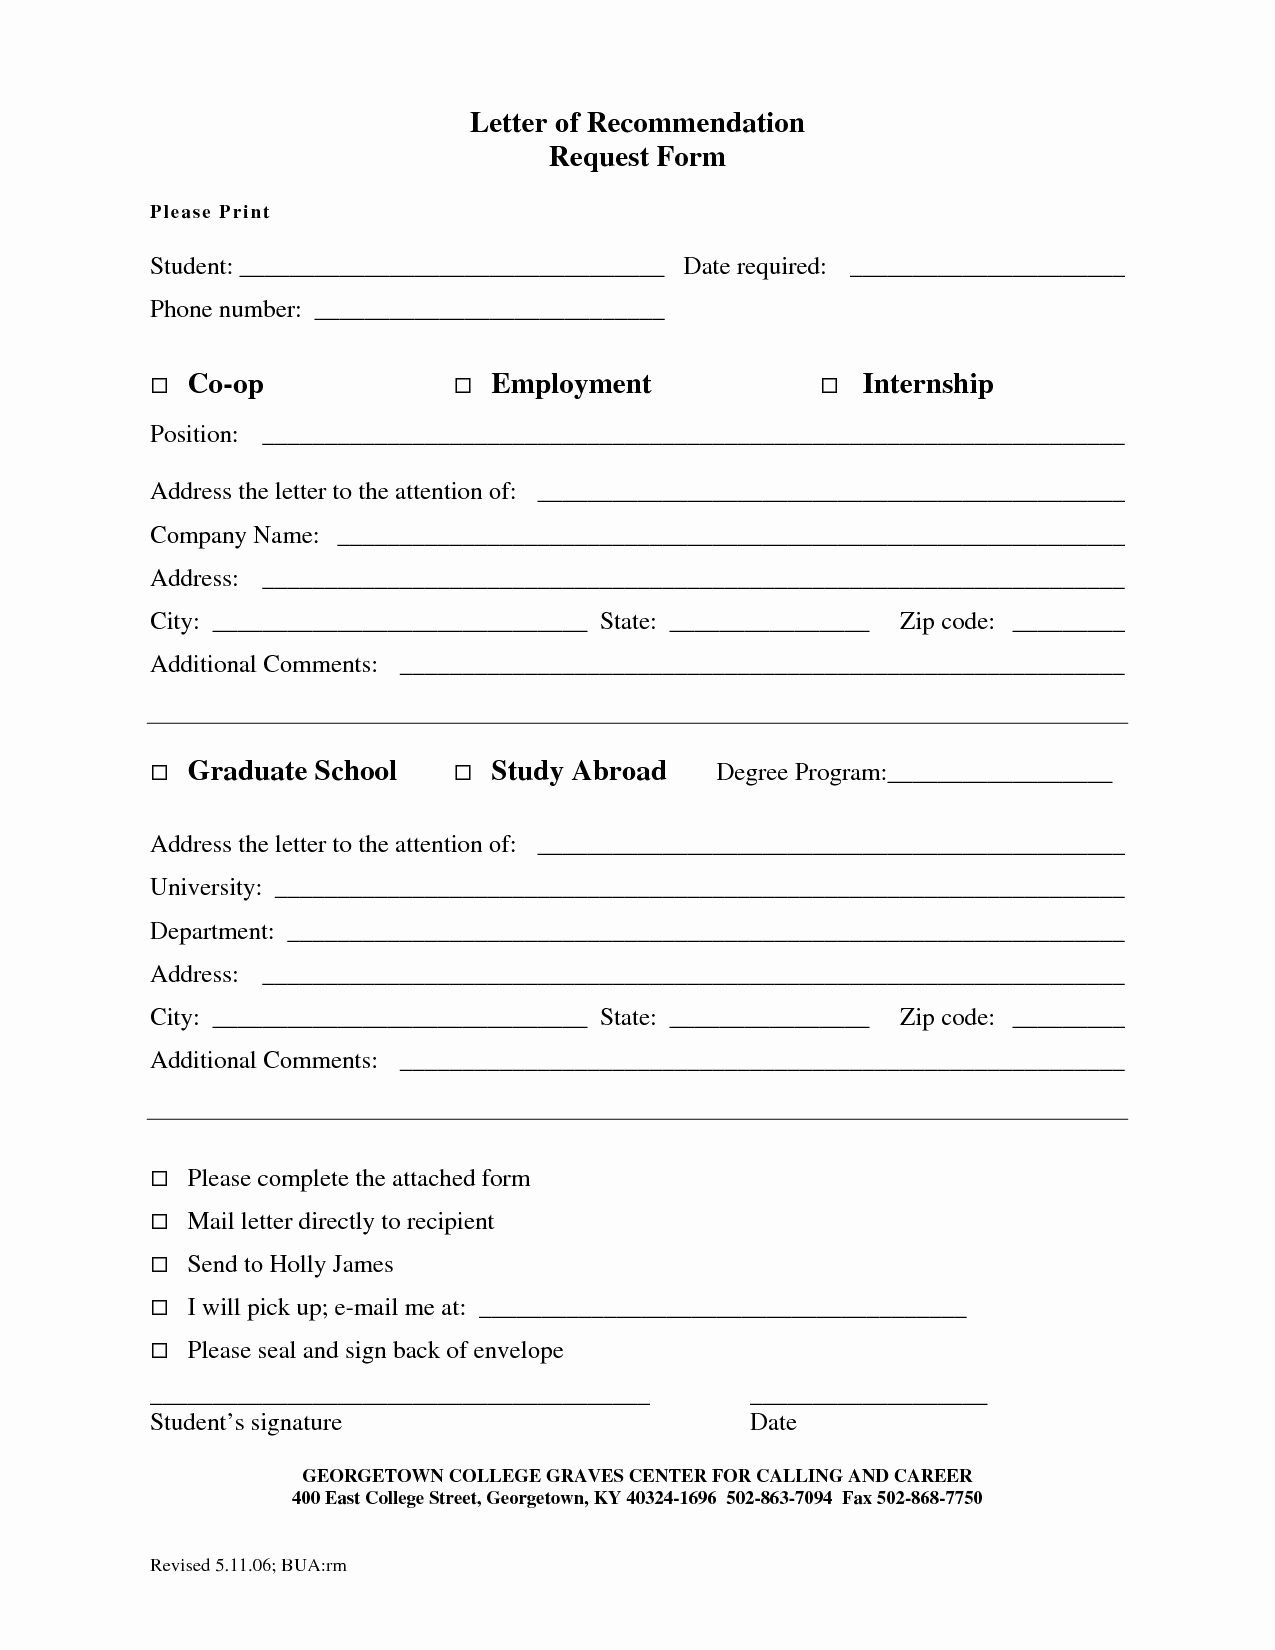 Lsac Letter Of Recommendation Best Of Letter Re Mendation Request Examples Teacher form